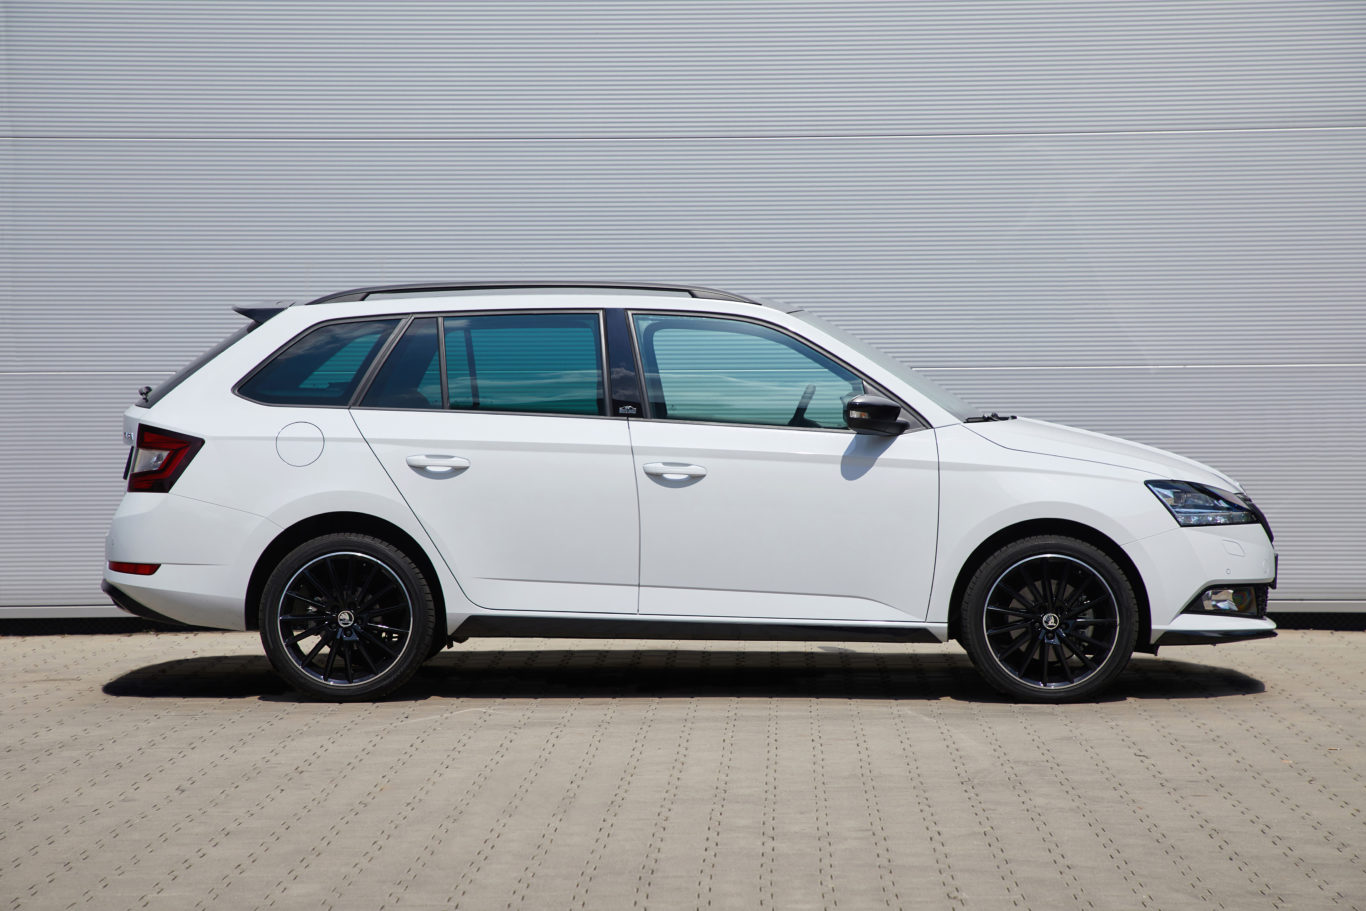 The profile of the estate Fabia is actually quite sleek